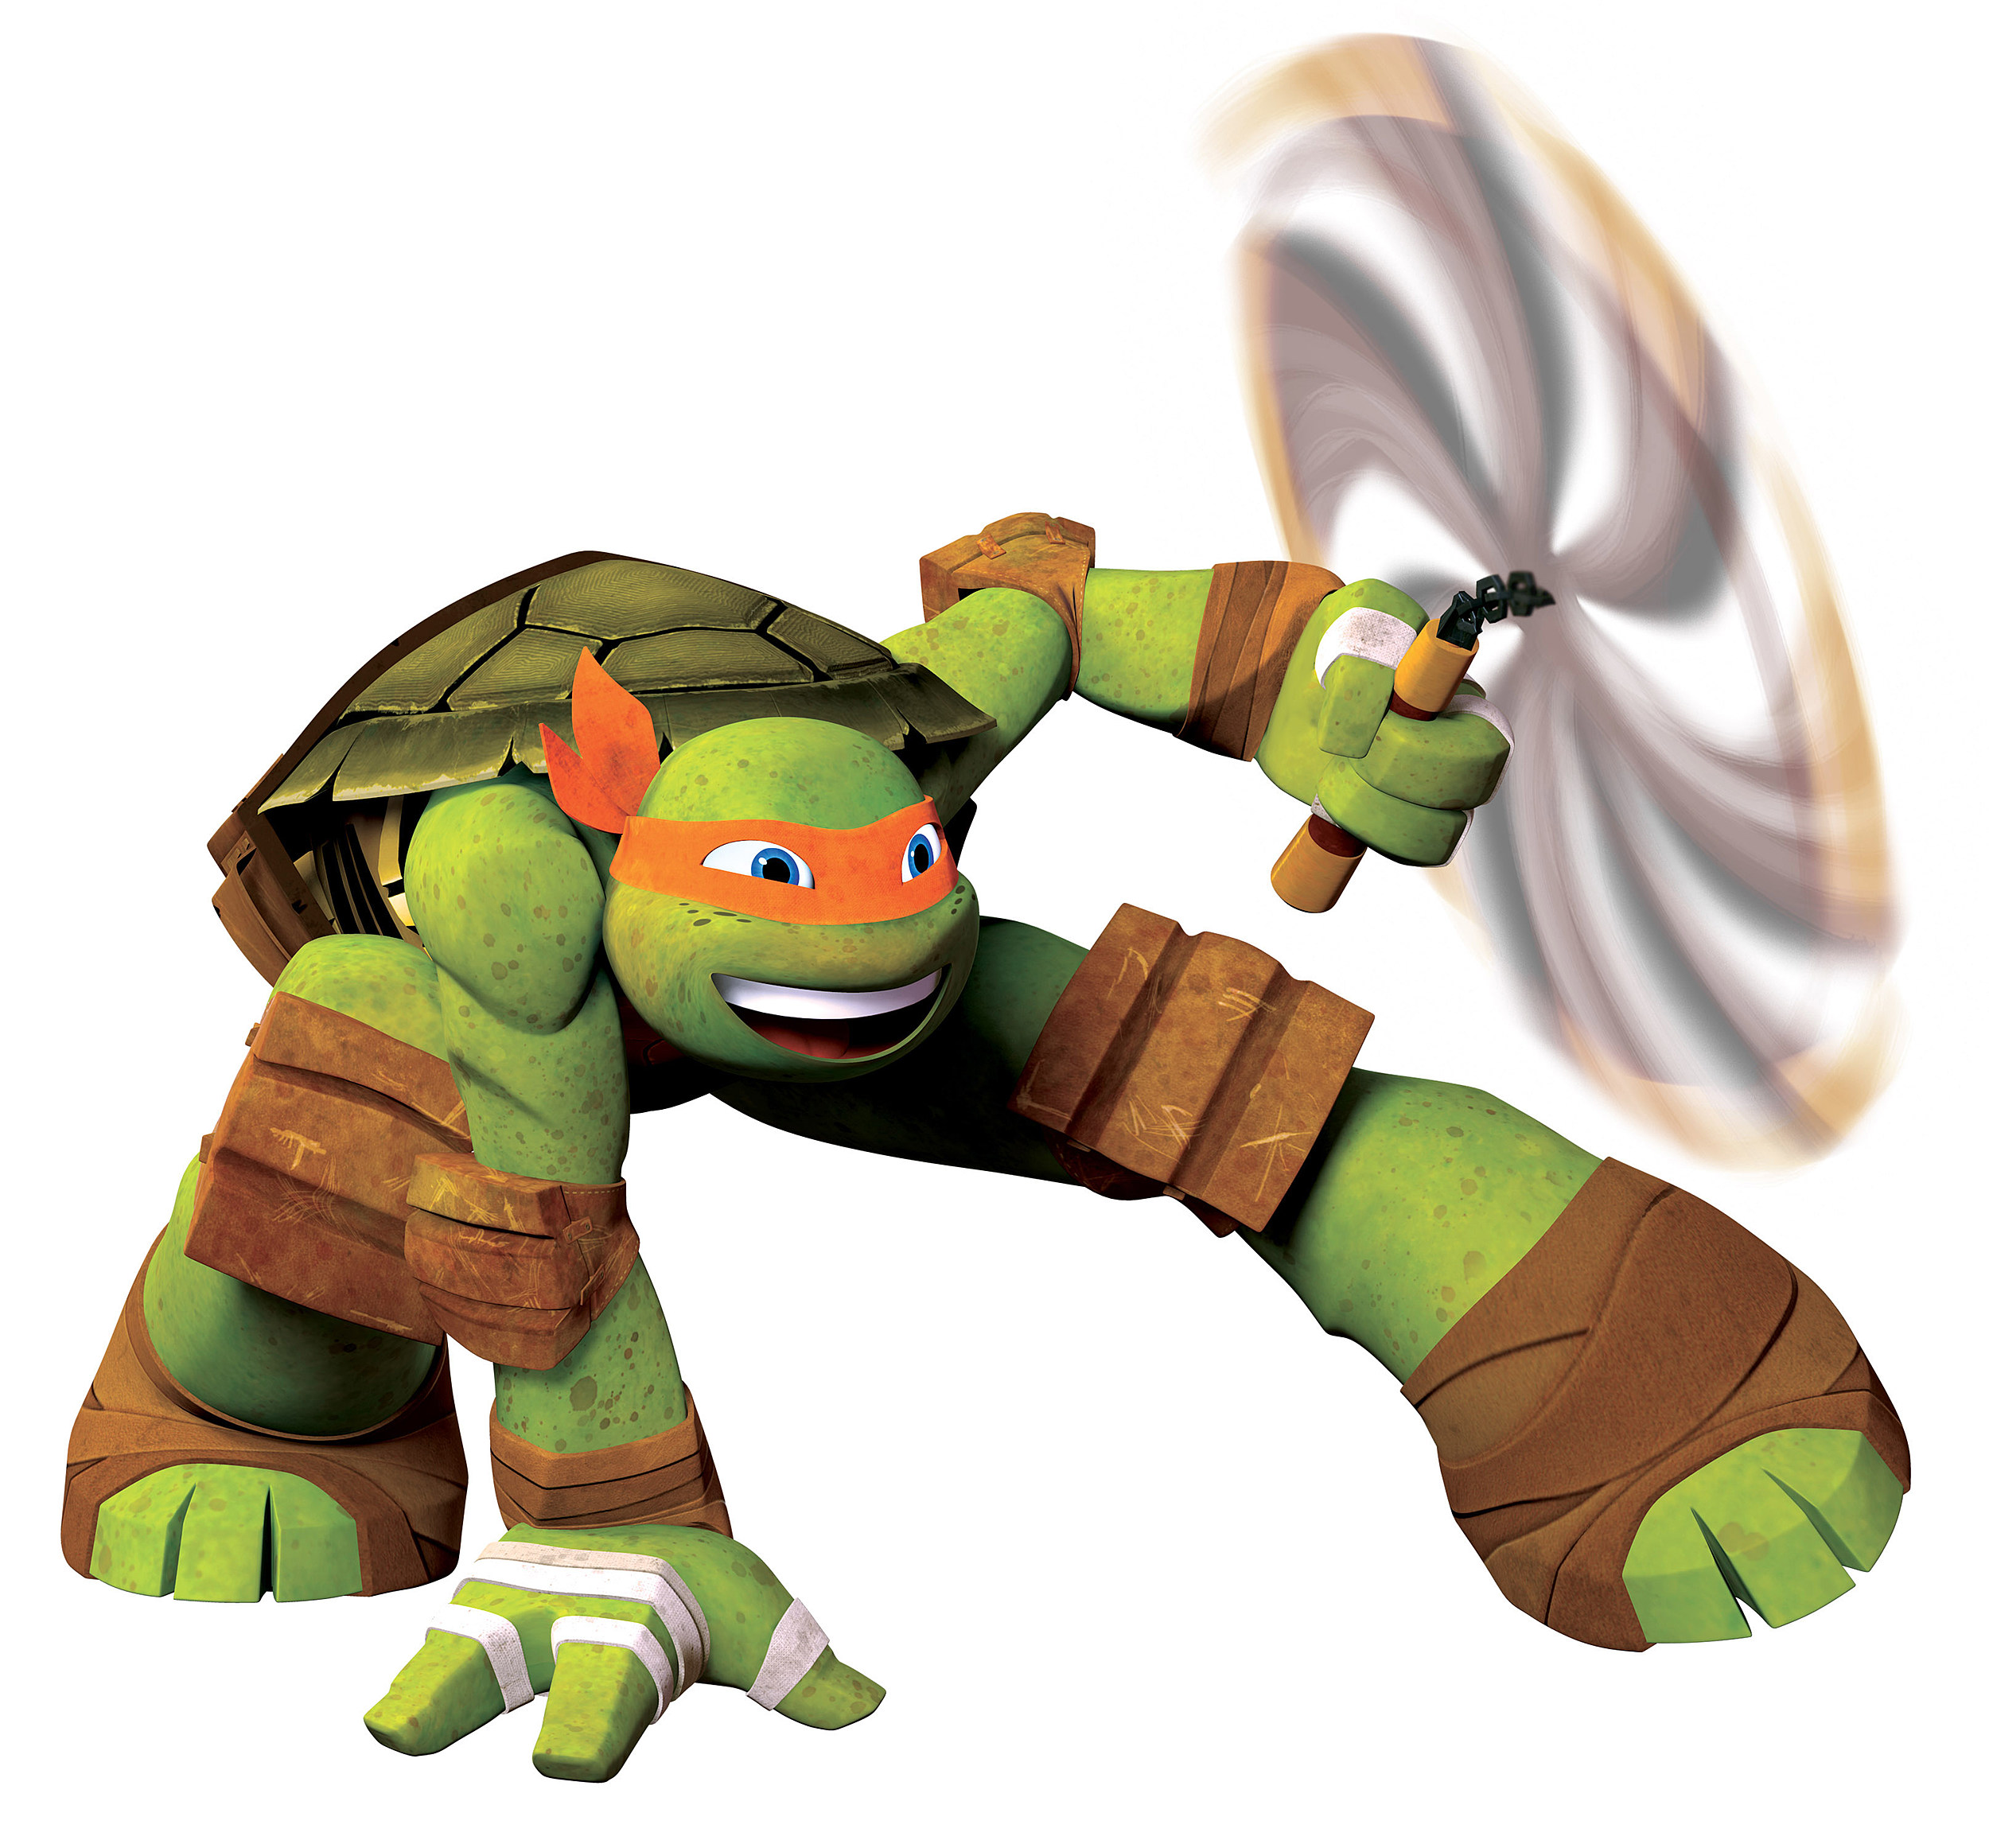 Ninja turtle michelangelo weapon - photo#8